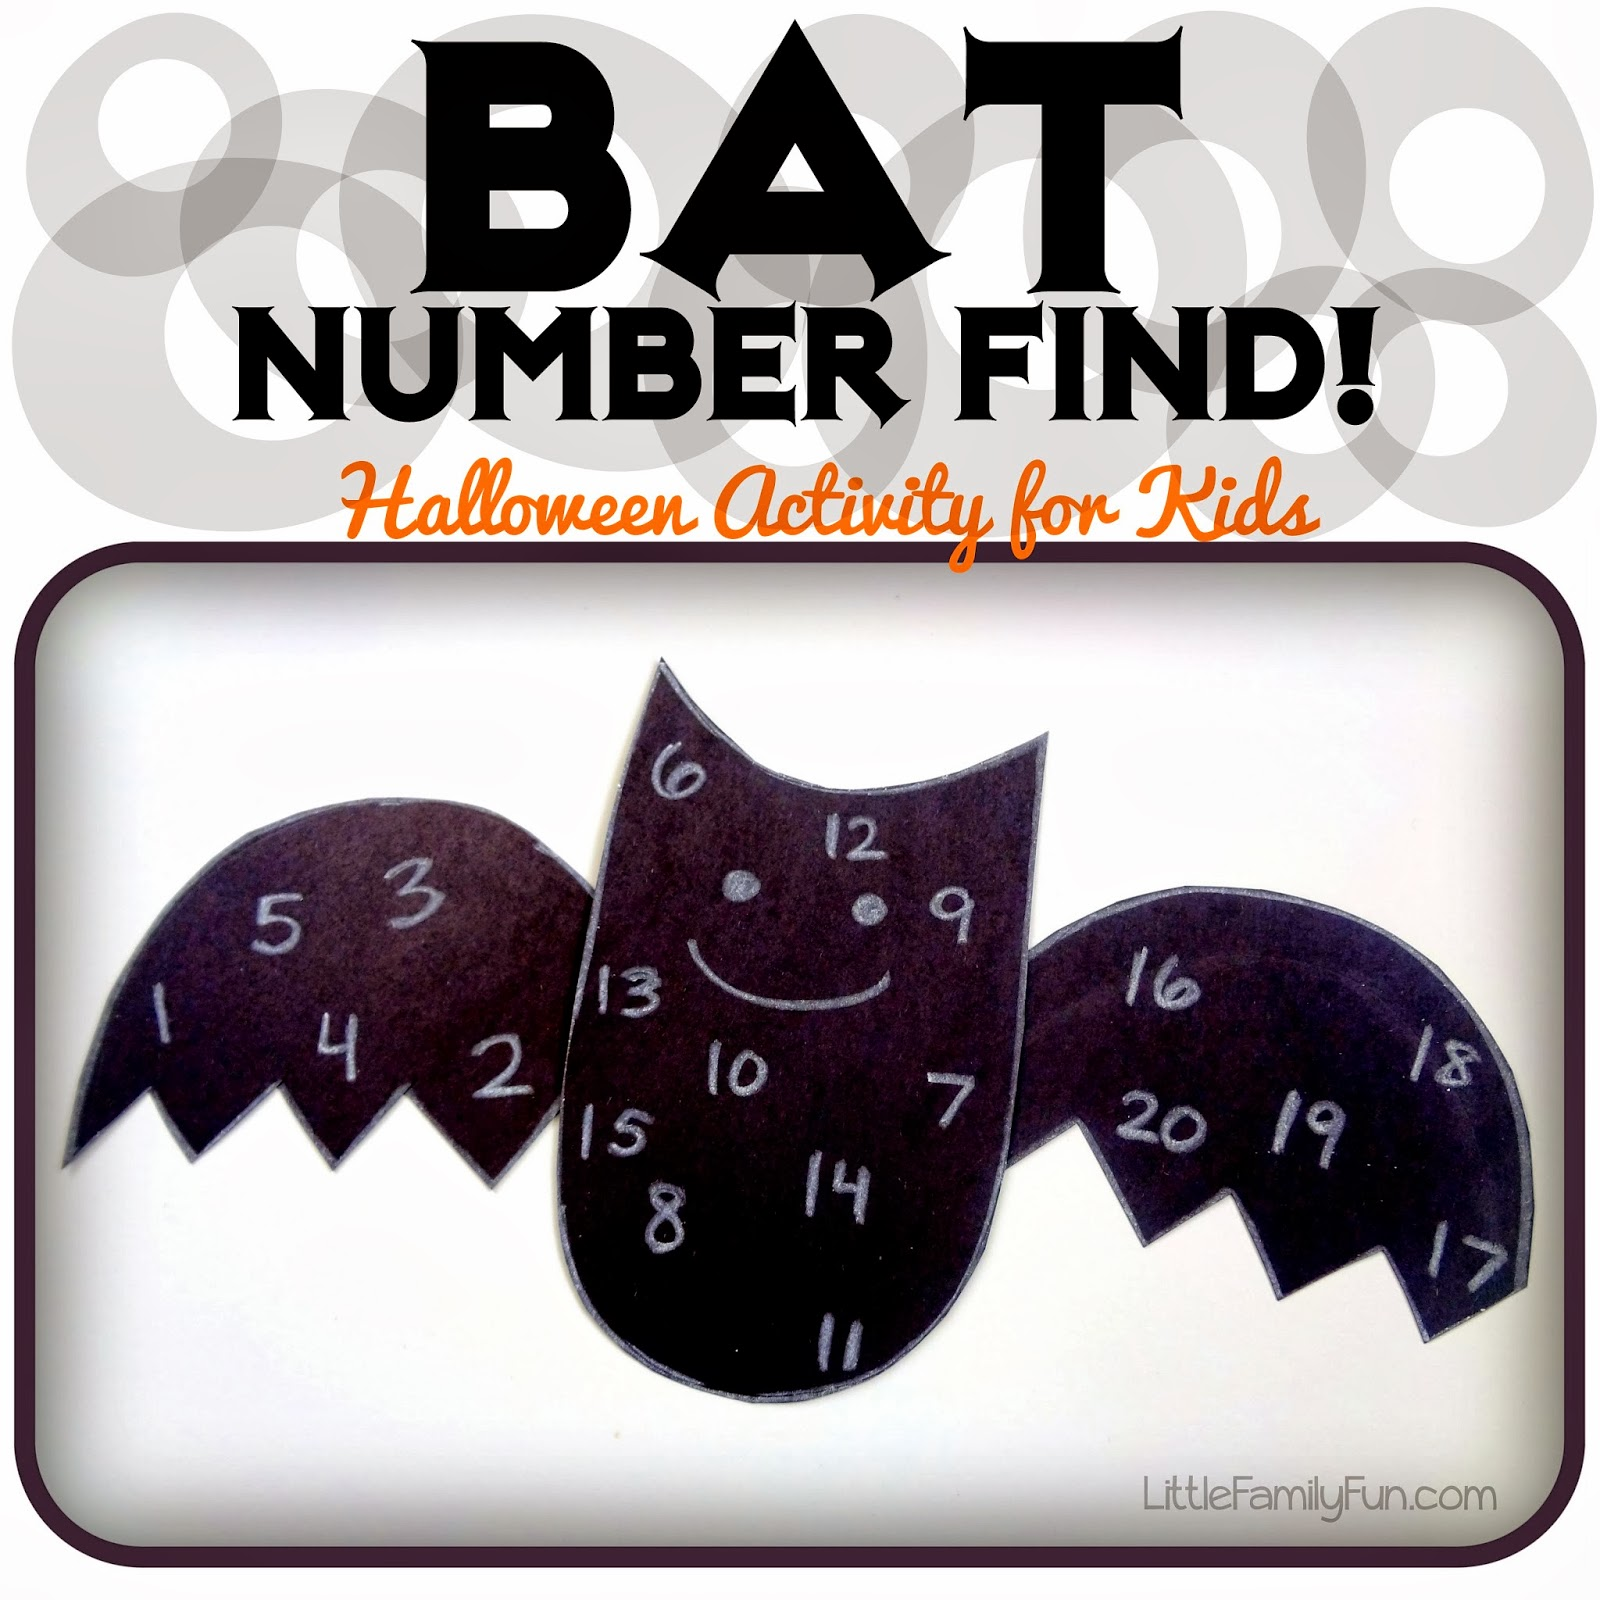 Little Family Fun Bat Number Find